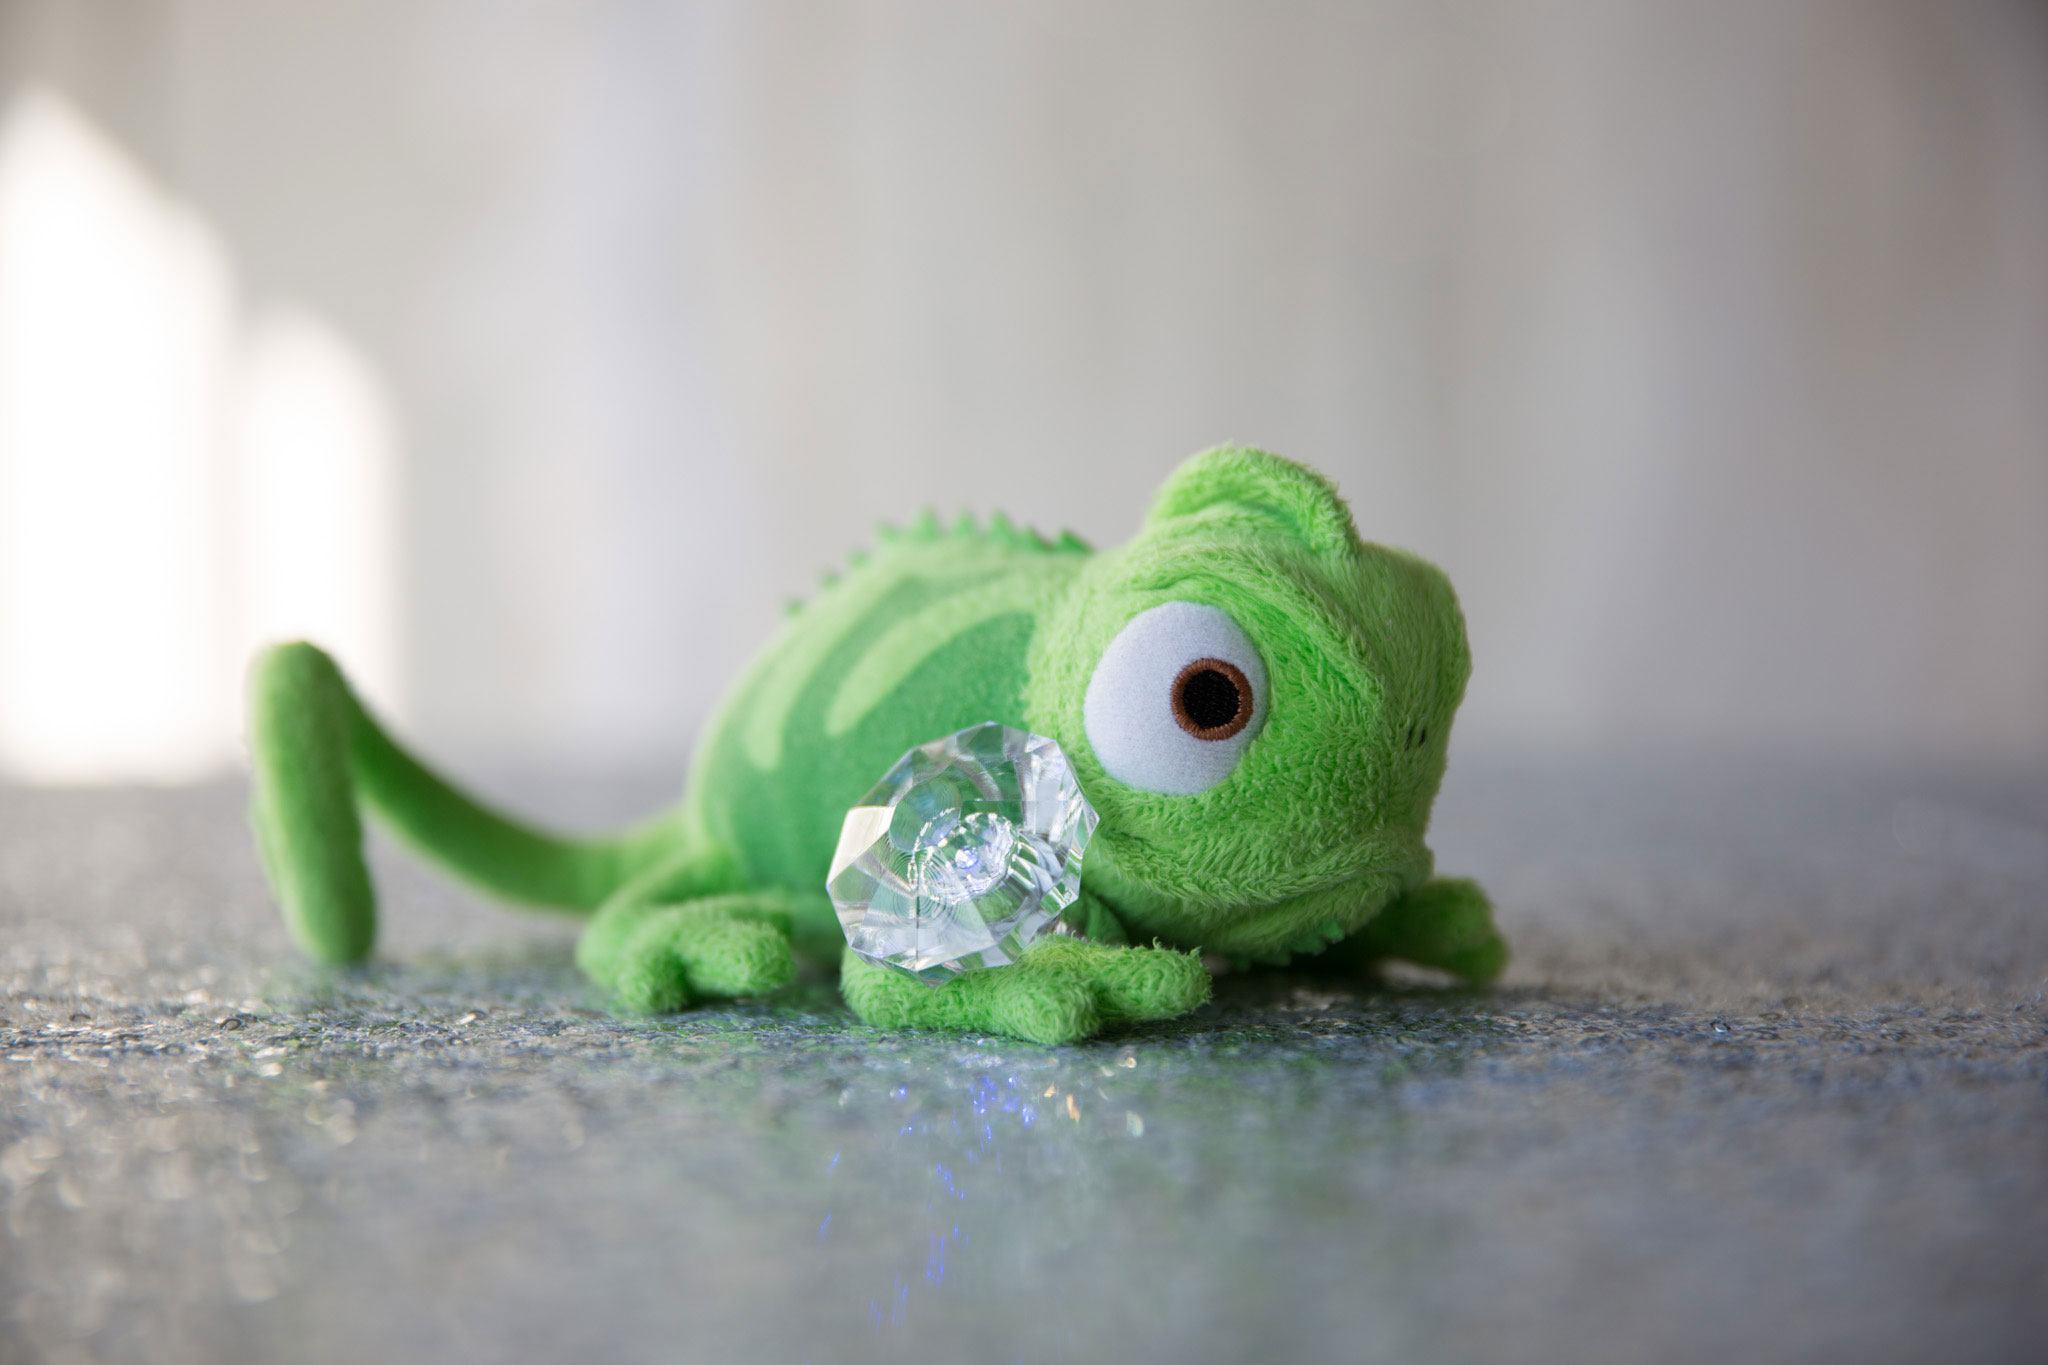 Pascal with his ring